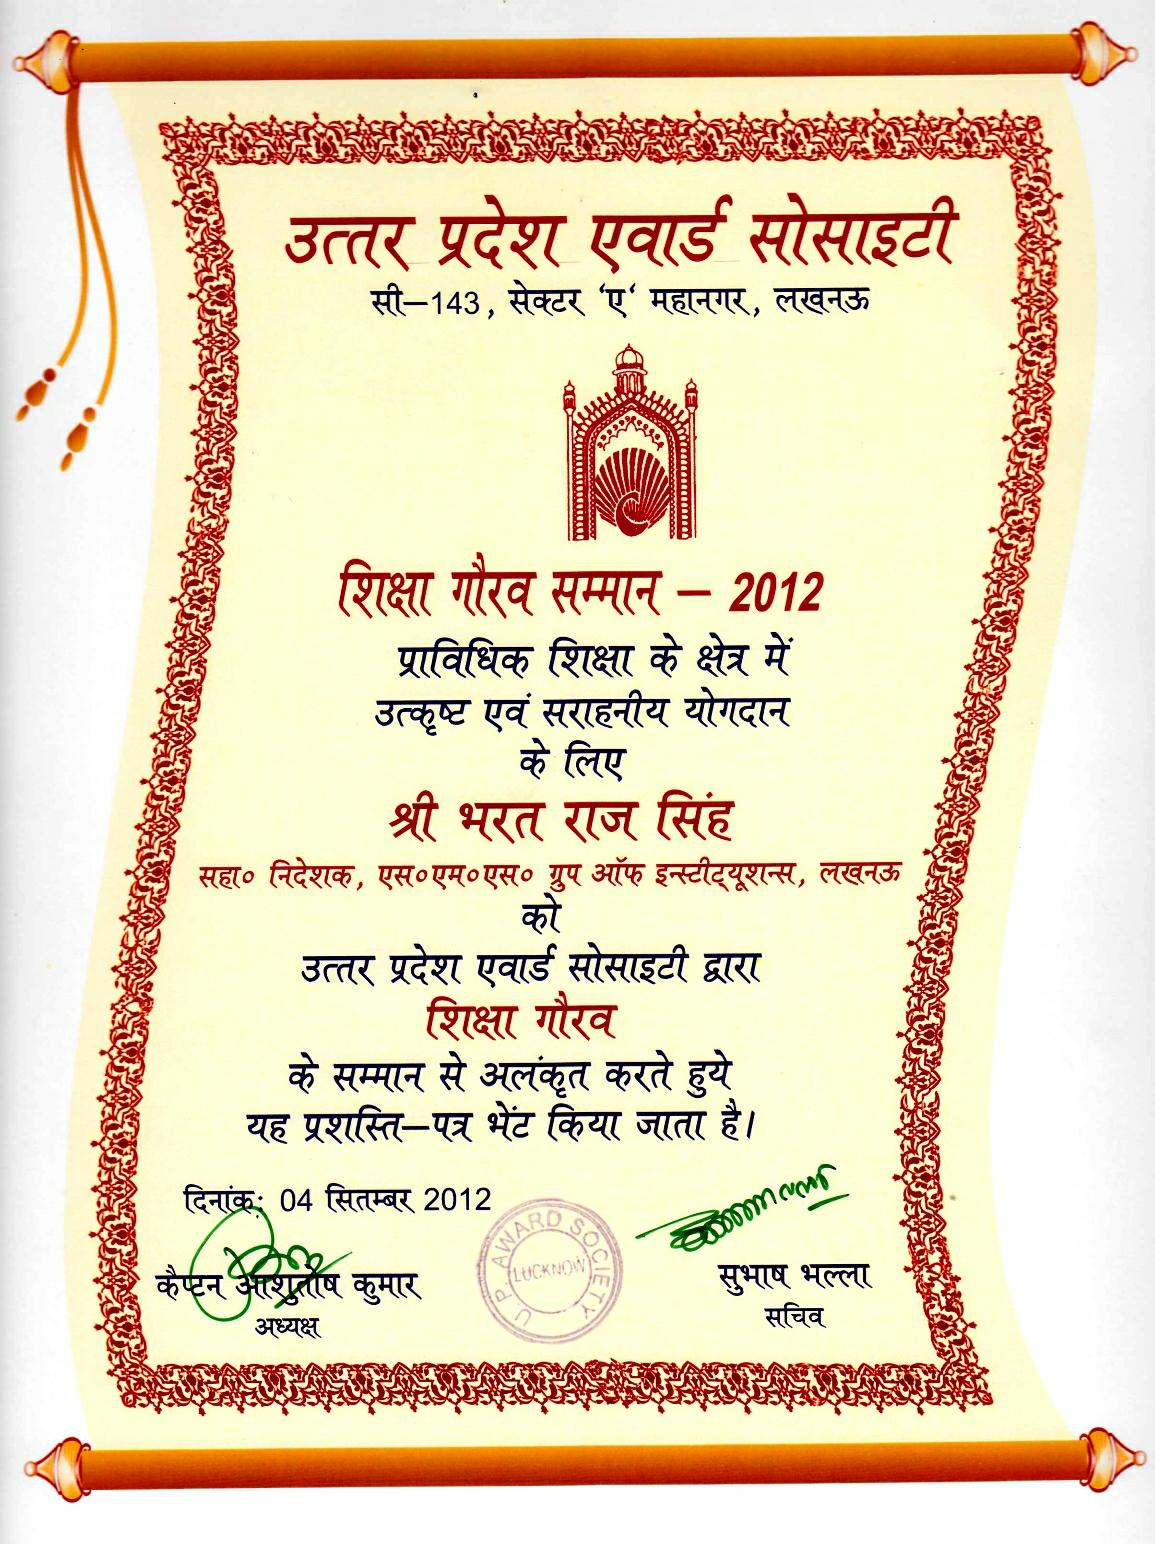 Invitation letter format for teachers day 28 images invitation invitation letter format for teachers day welcome to dr brsingh india stopboris Image collections